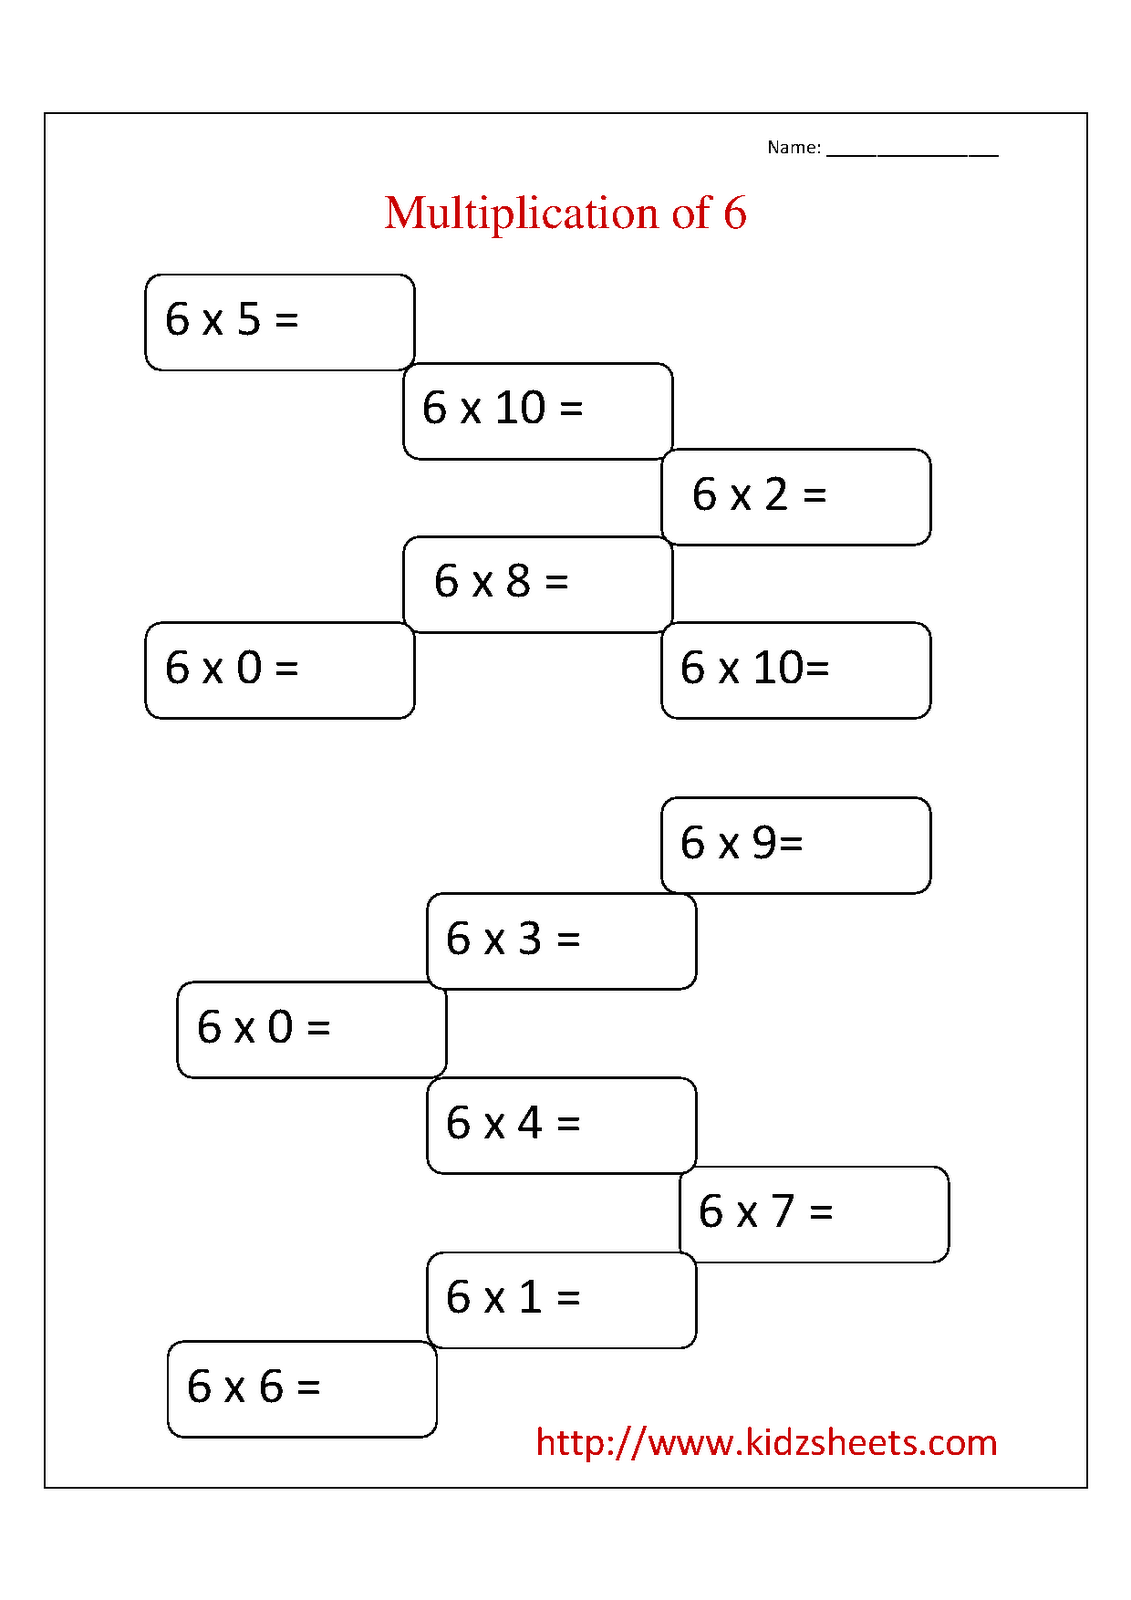 Kidz Worksheets Second Grade Multiplication Table 6